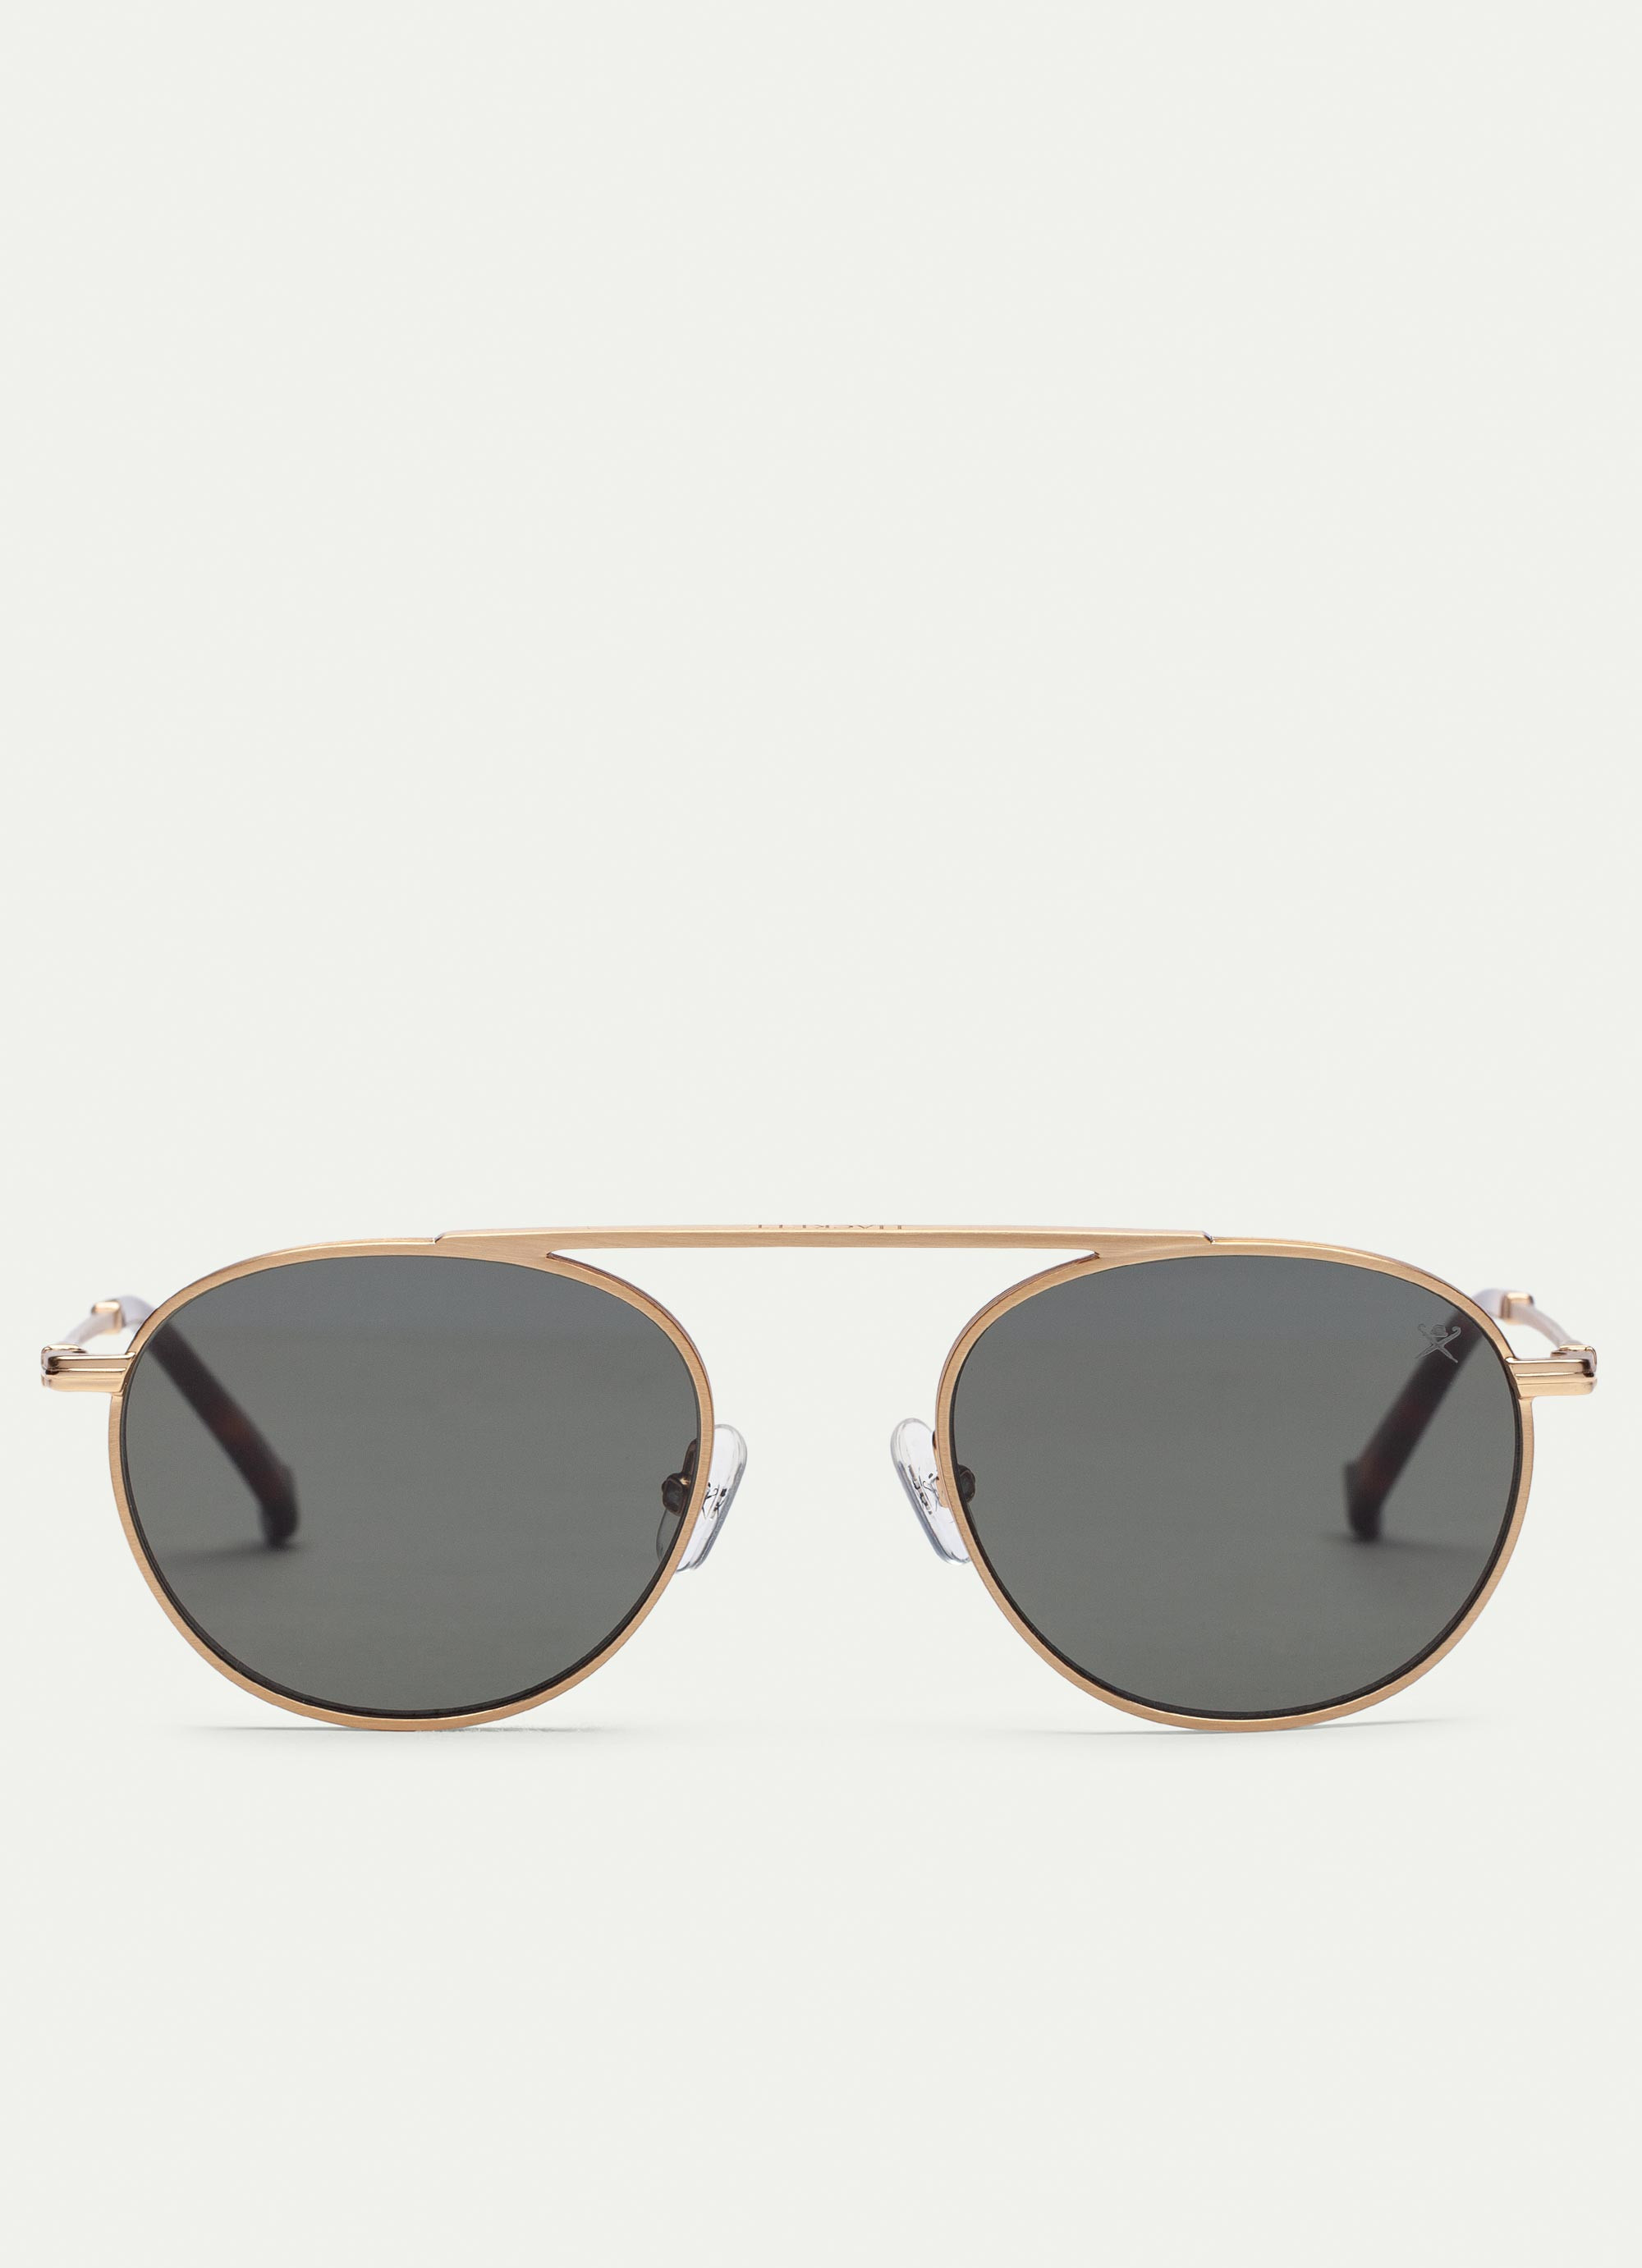 SUNGLASSES IN BRUSH GOLD - Carefully crafted using only the finest parts and materials, the discreet branding will give you a sense of the Rivera.